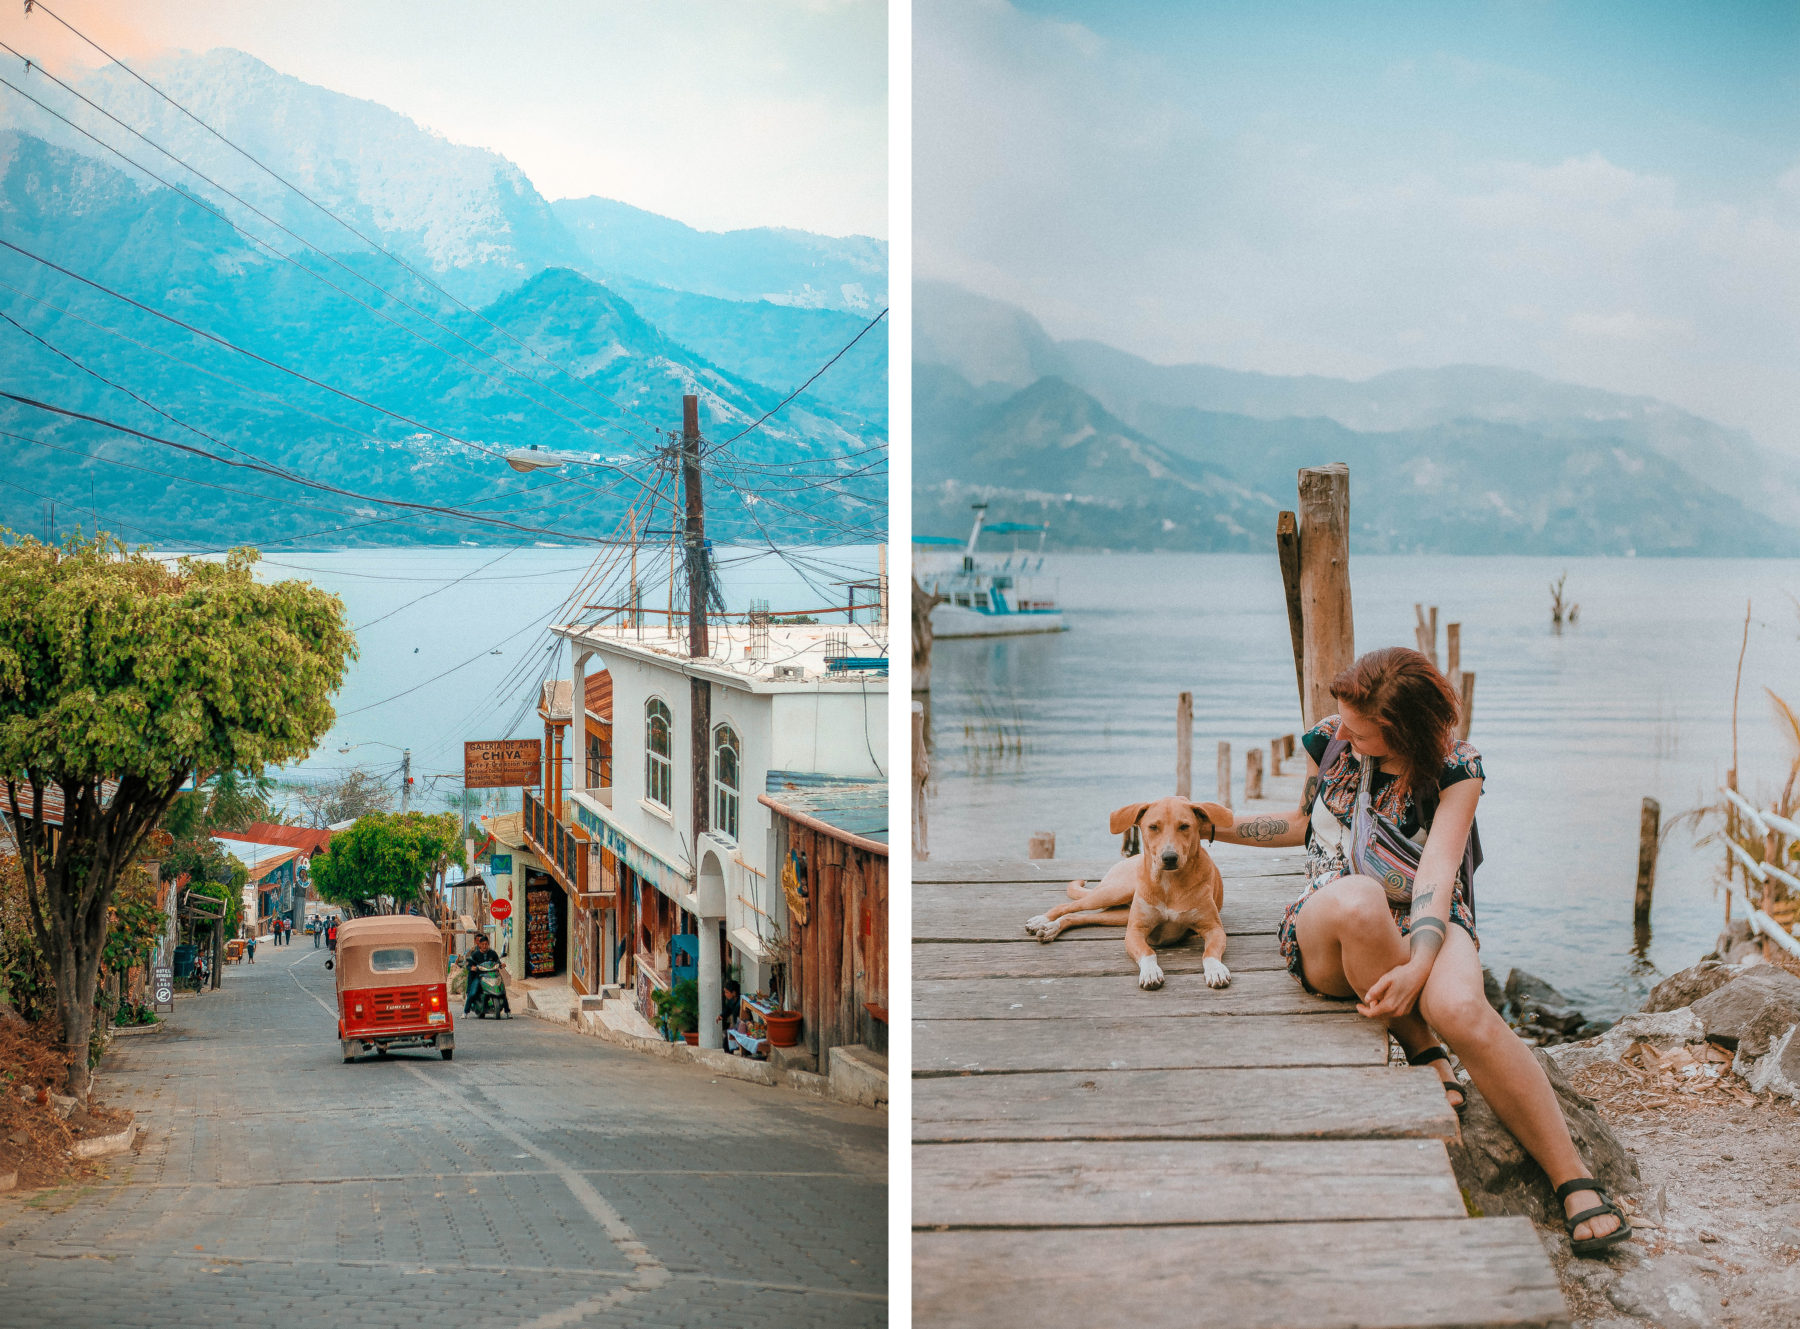 guatemala lake atitlan lago central america most beautiful lake in the world blue water sunny day street dogs puppie deck san juan la laguna